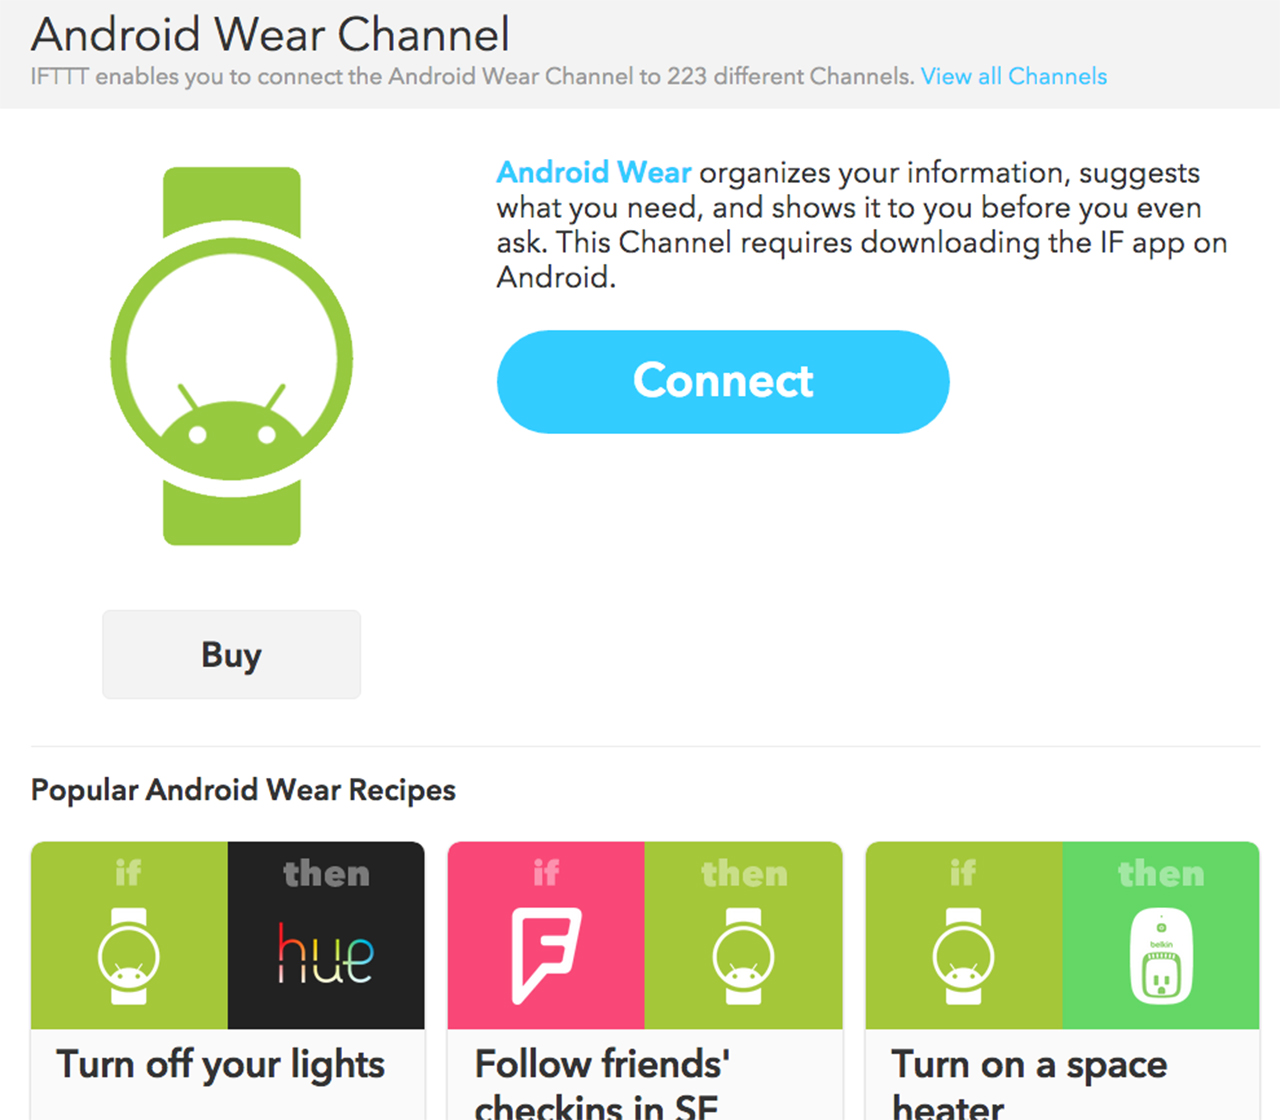 Android Wear IFFT